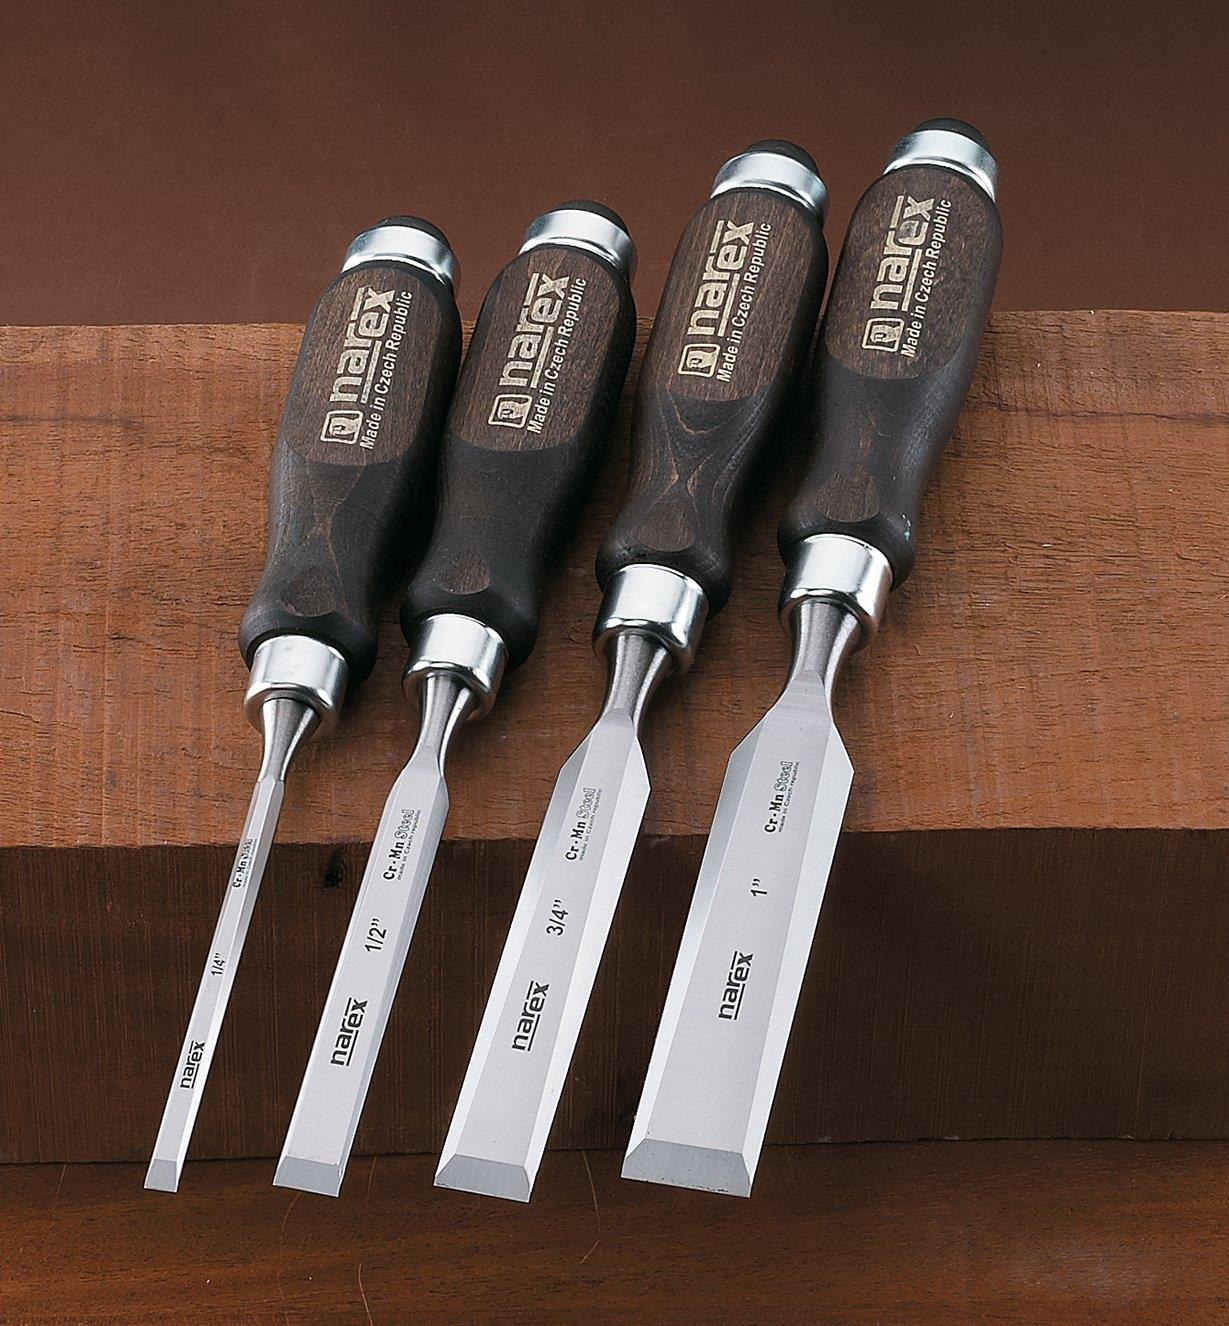 "10S0976 - Narex Classic Bevel-Edge Chisels, Set of 4 (1/4"", 1/2"", 3/4"", 1"")"